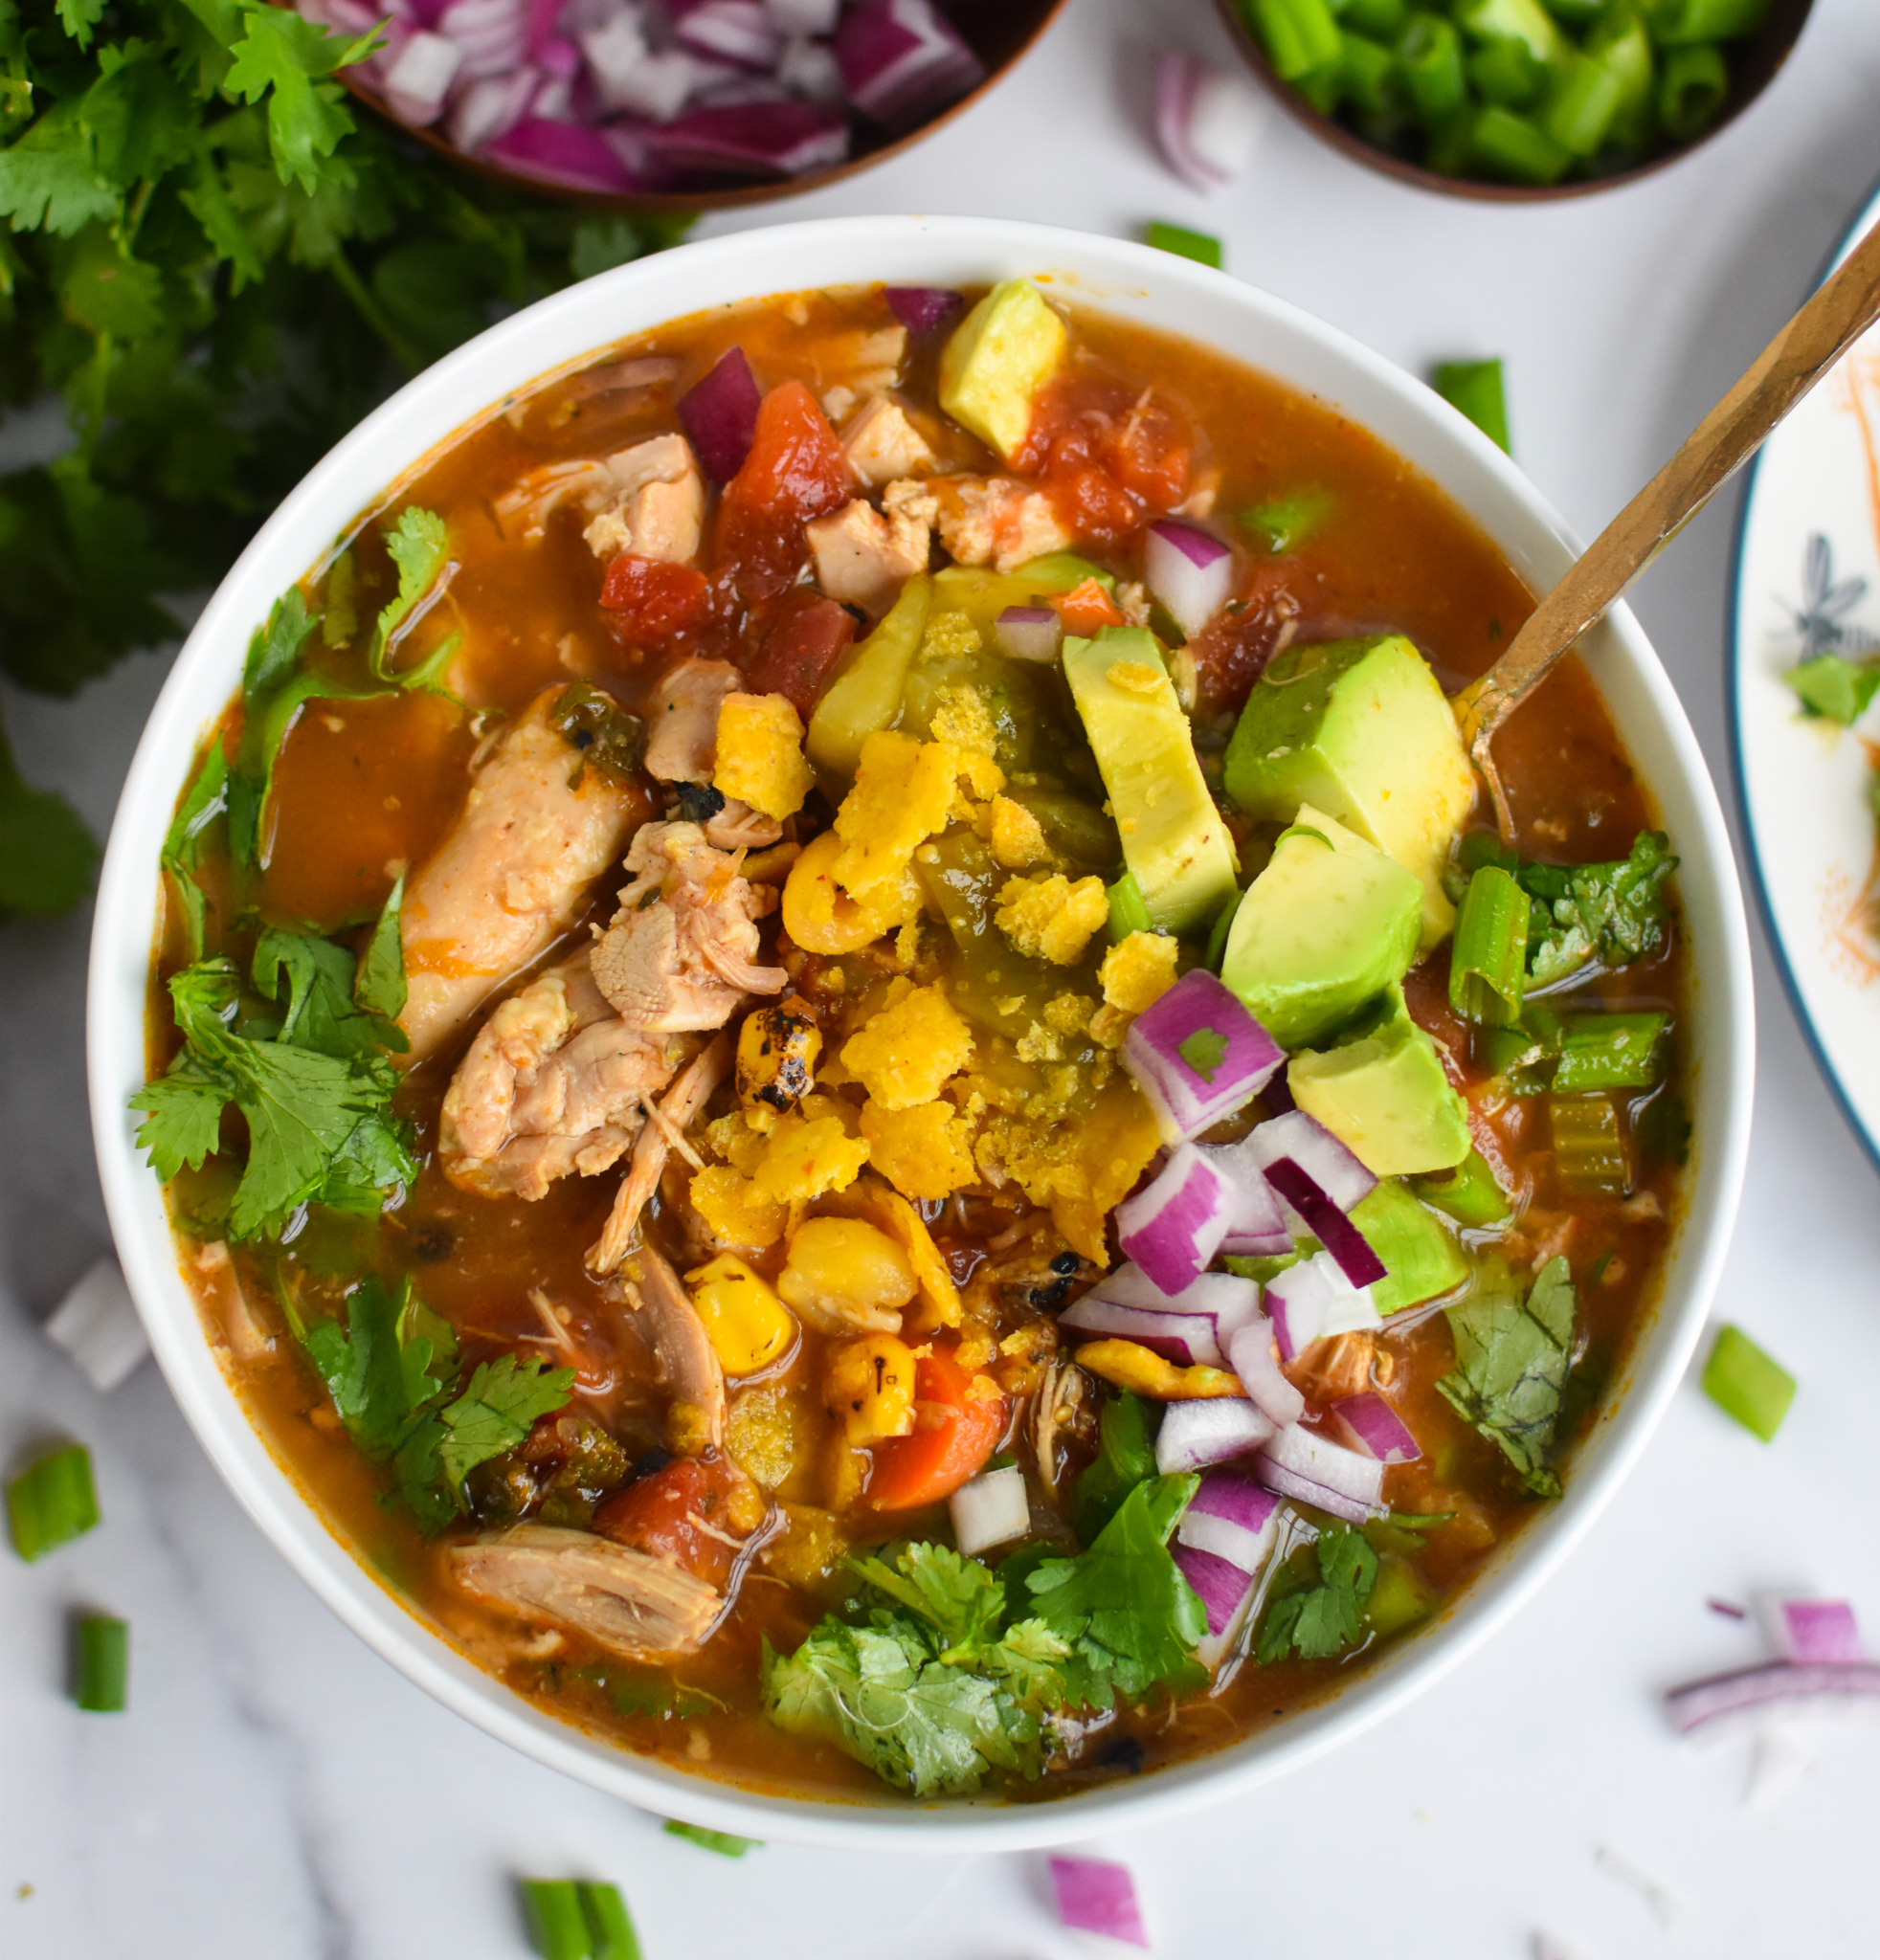 Green Chili Chicken Soup with avocado